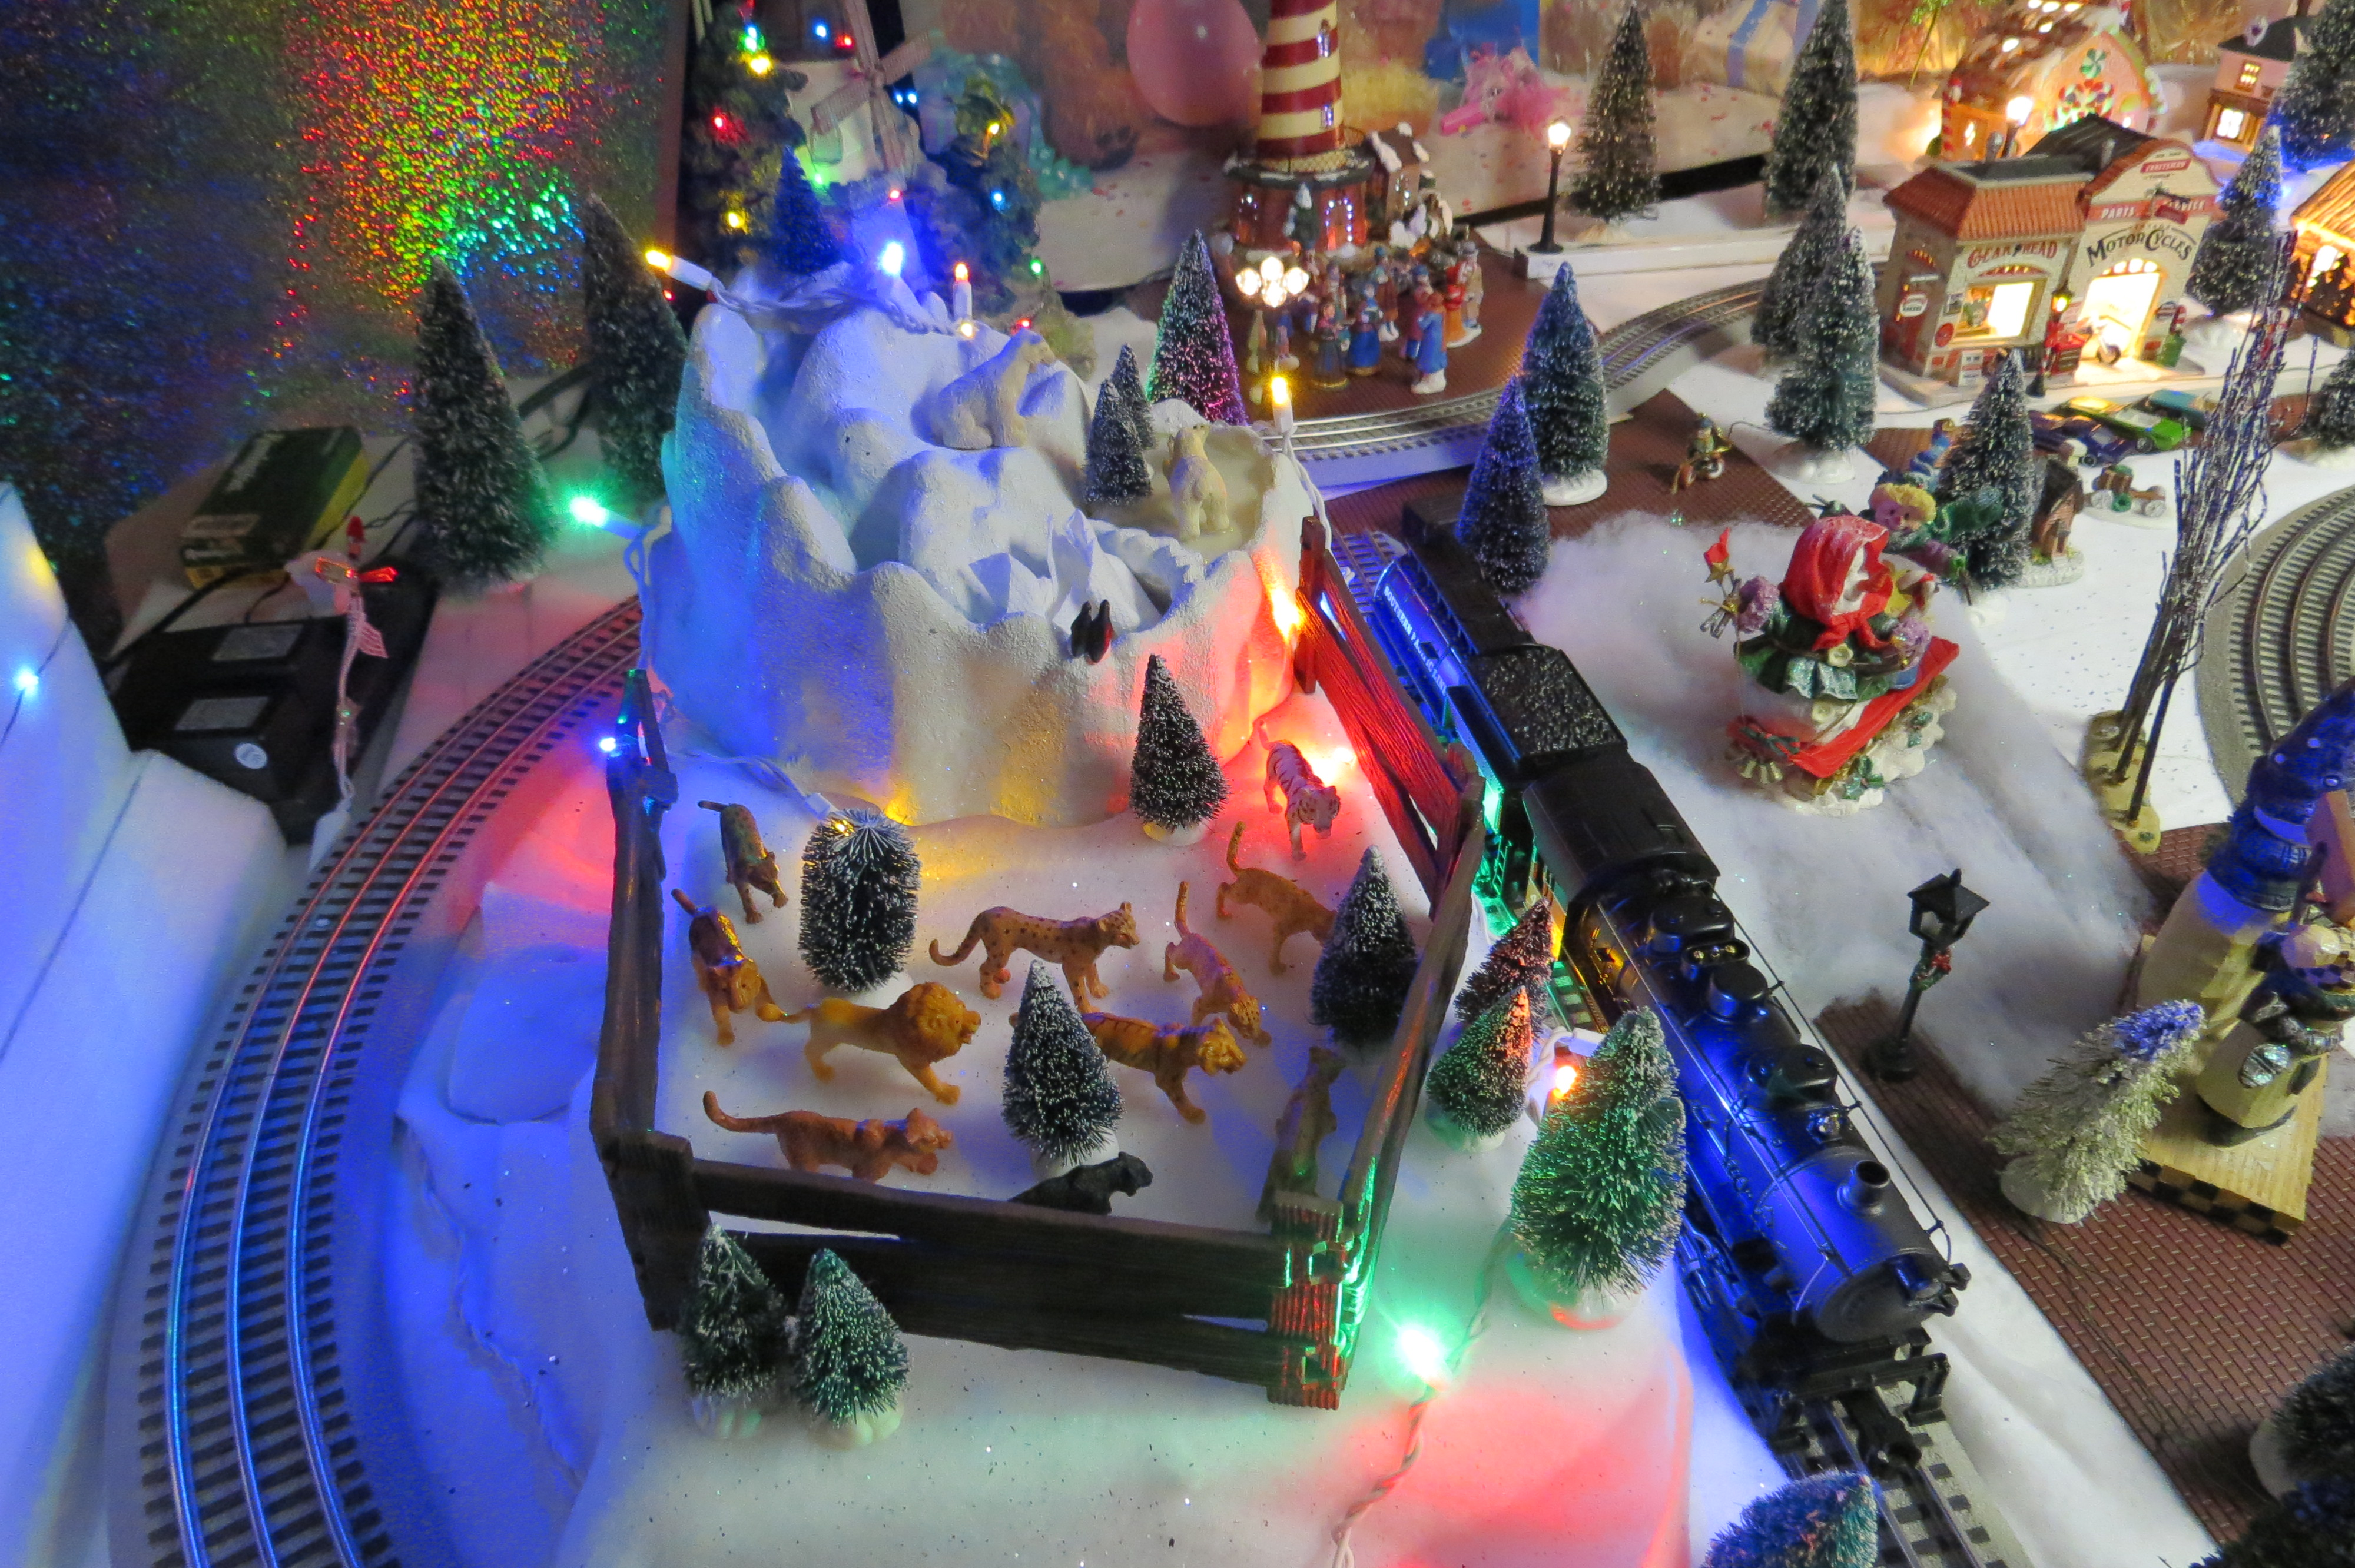 Lights in a model train village shellie at christmas light source